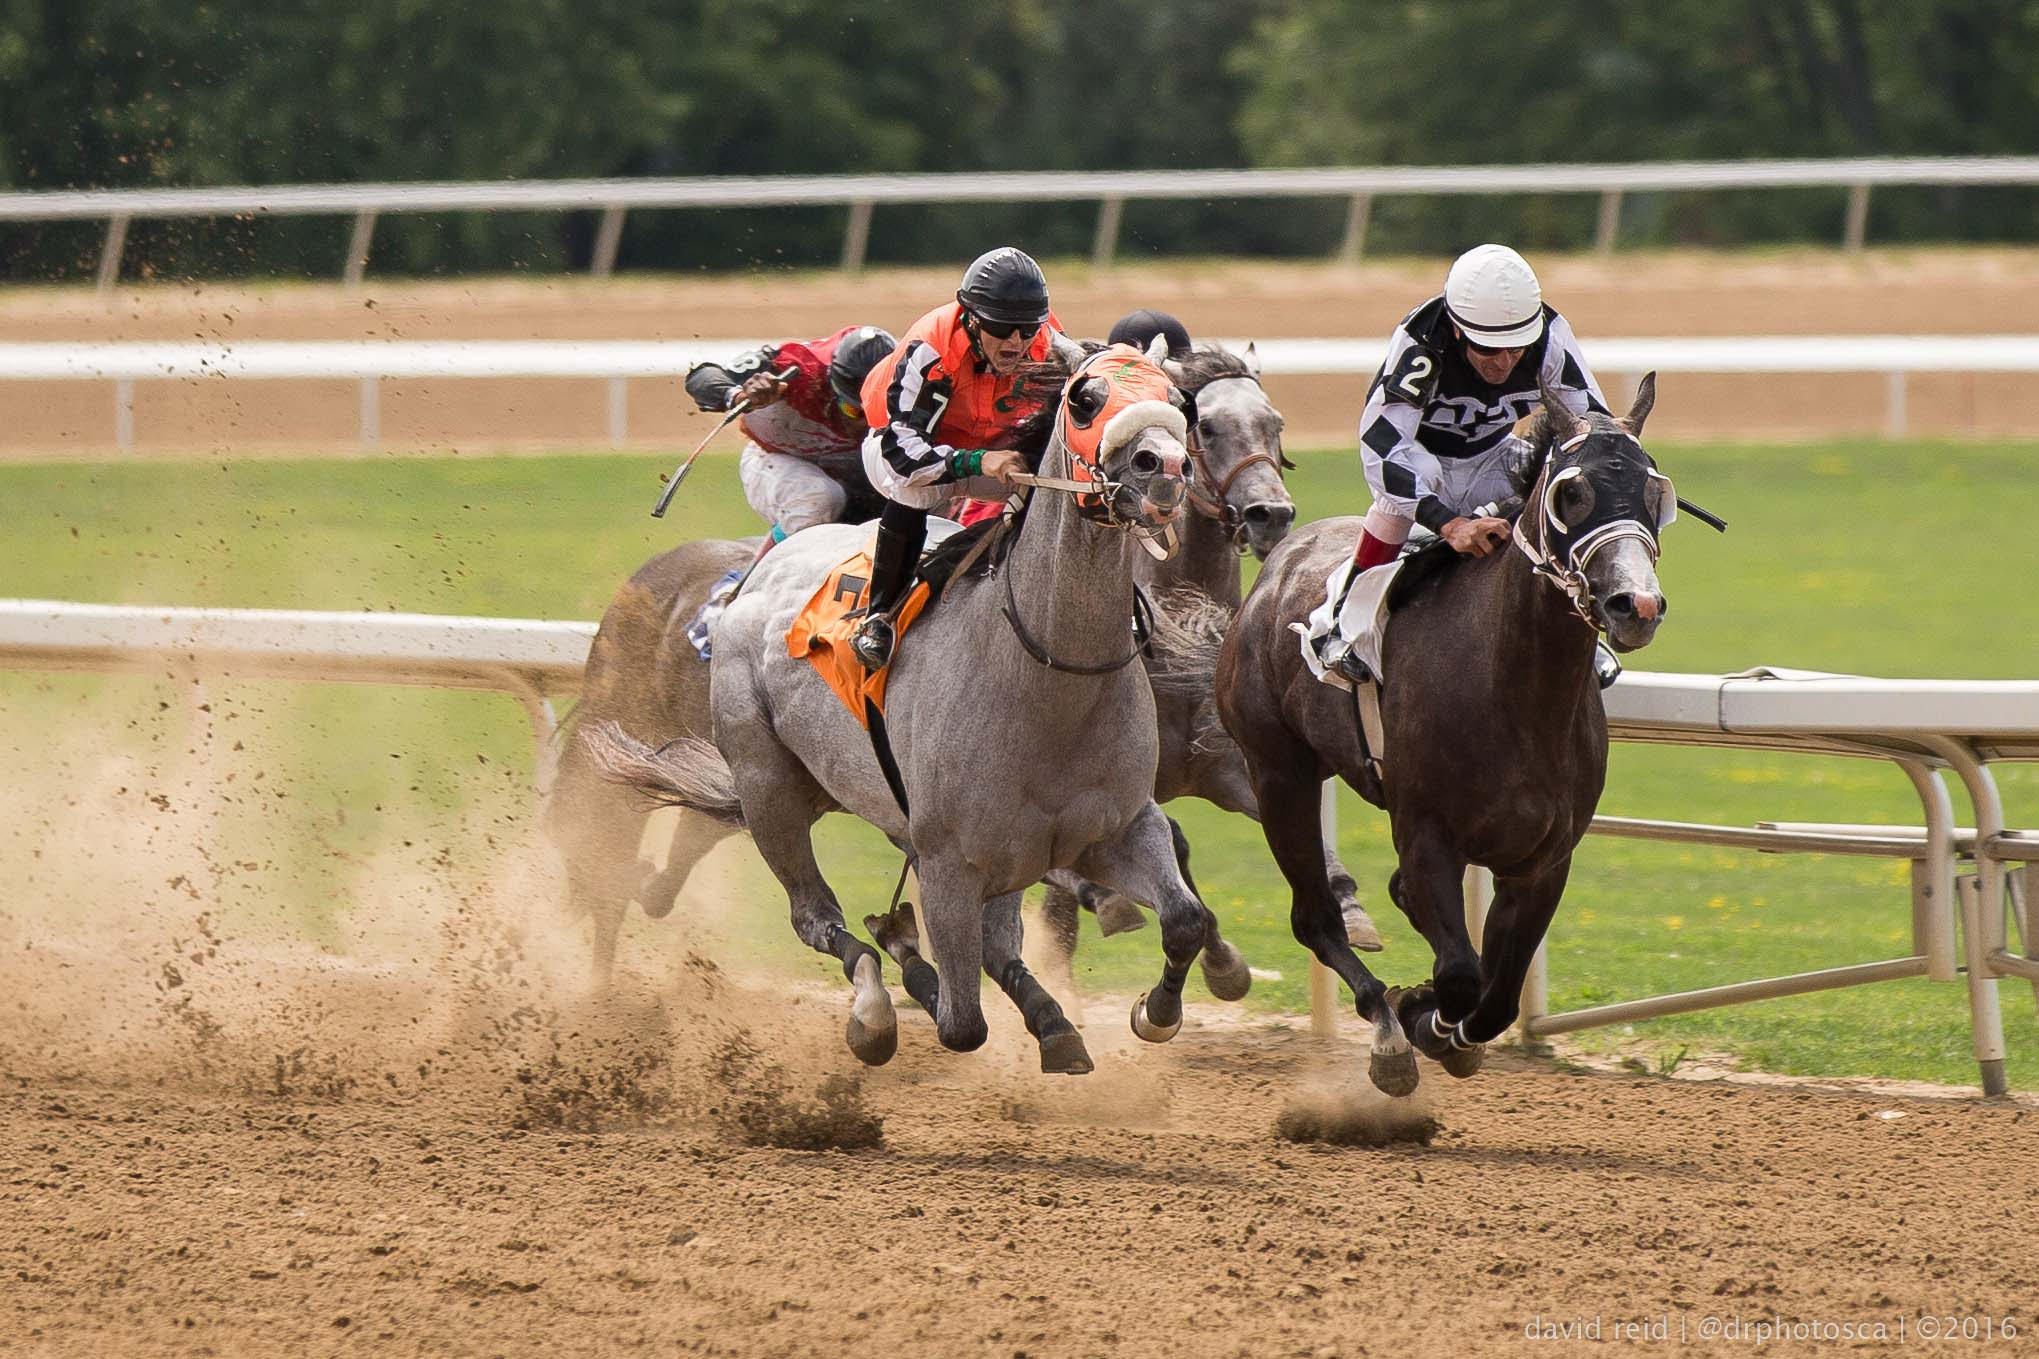 New photos released taken at Ajax Downs of Quarter horse racing